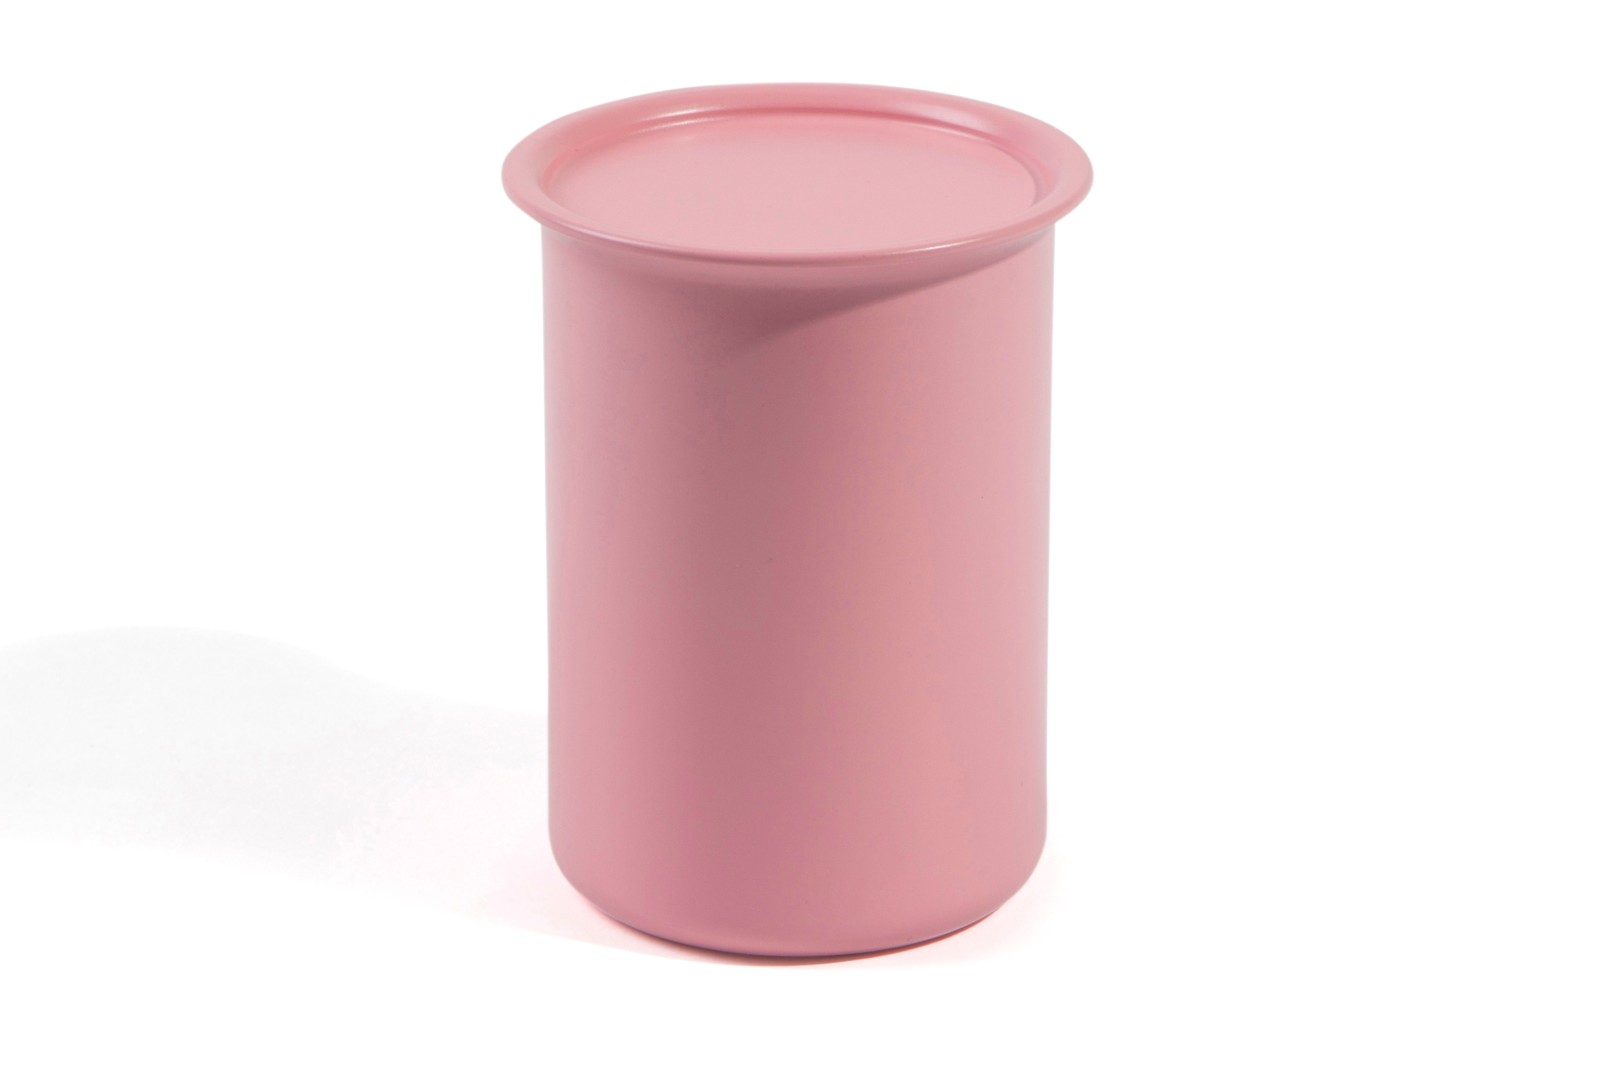 Ayasa Storage Container Pink with Metal Lid, 0.75L